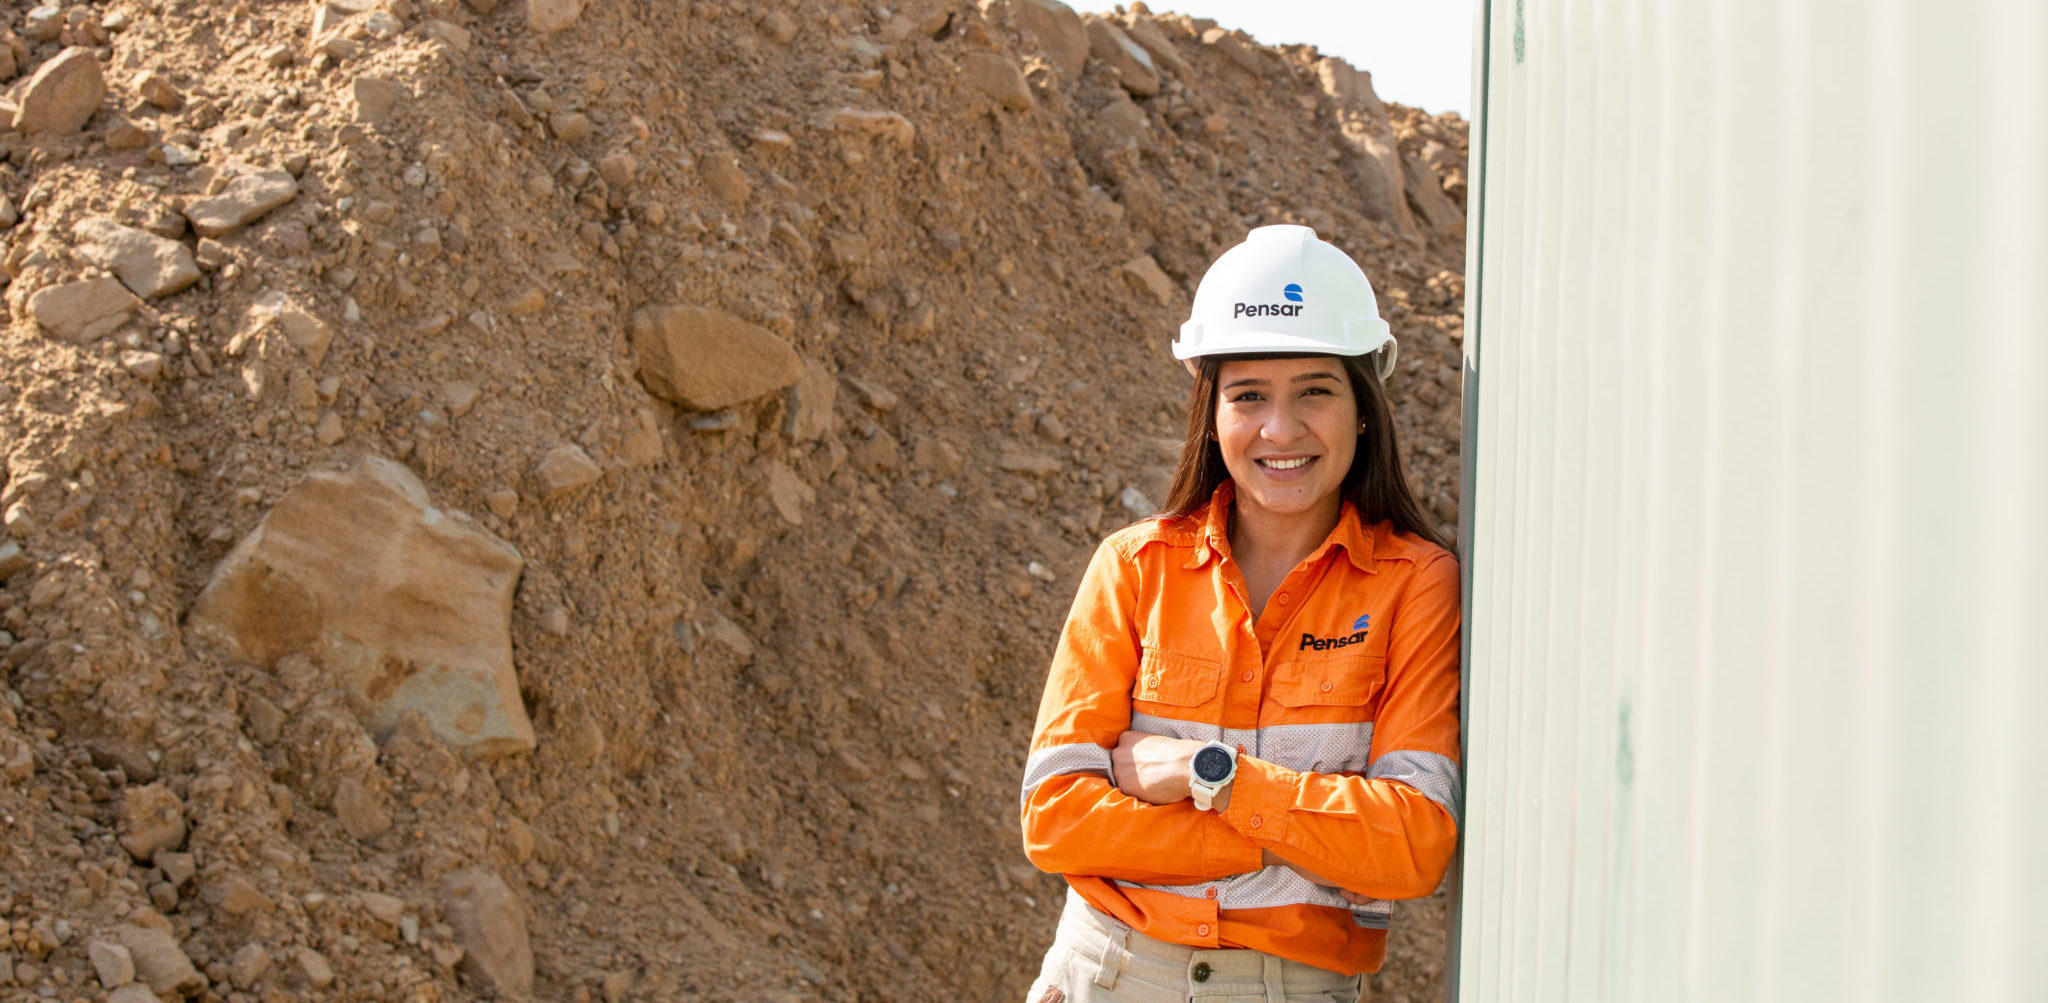 A winning approach to championing safety on site